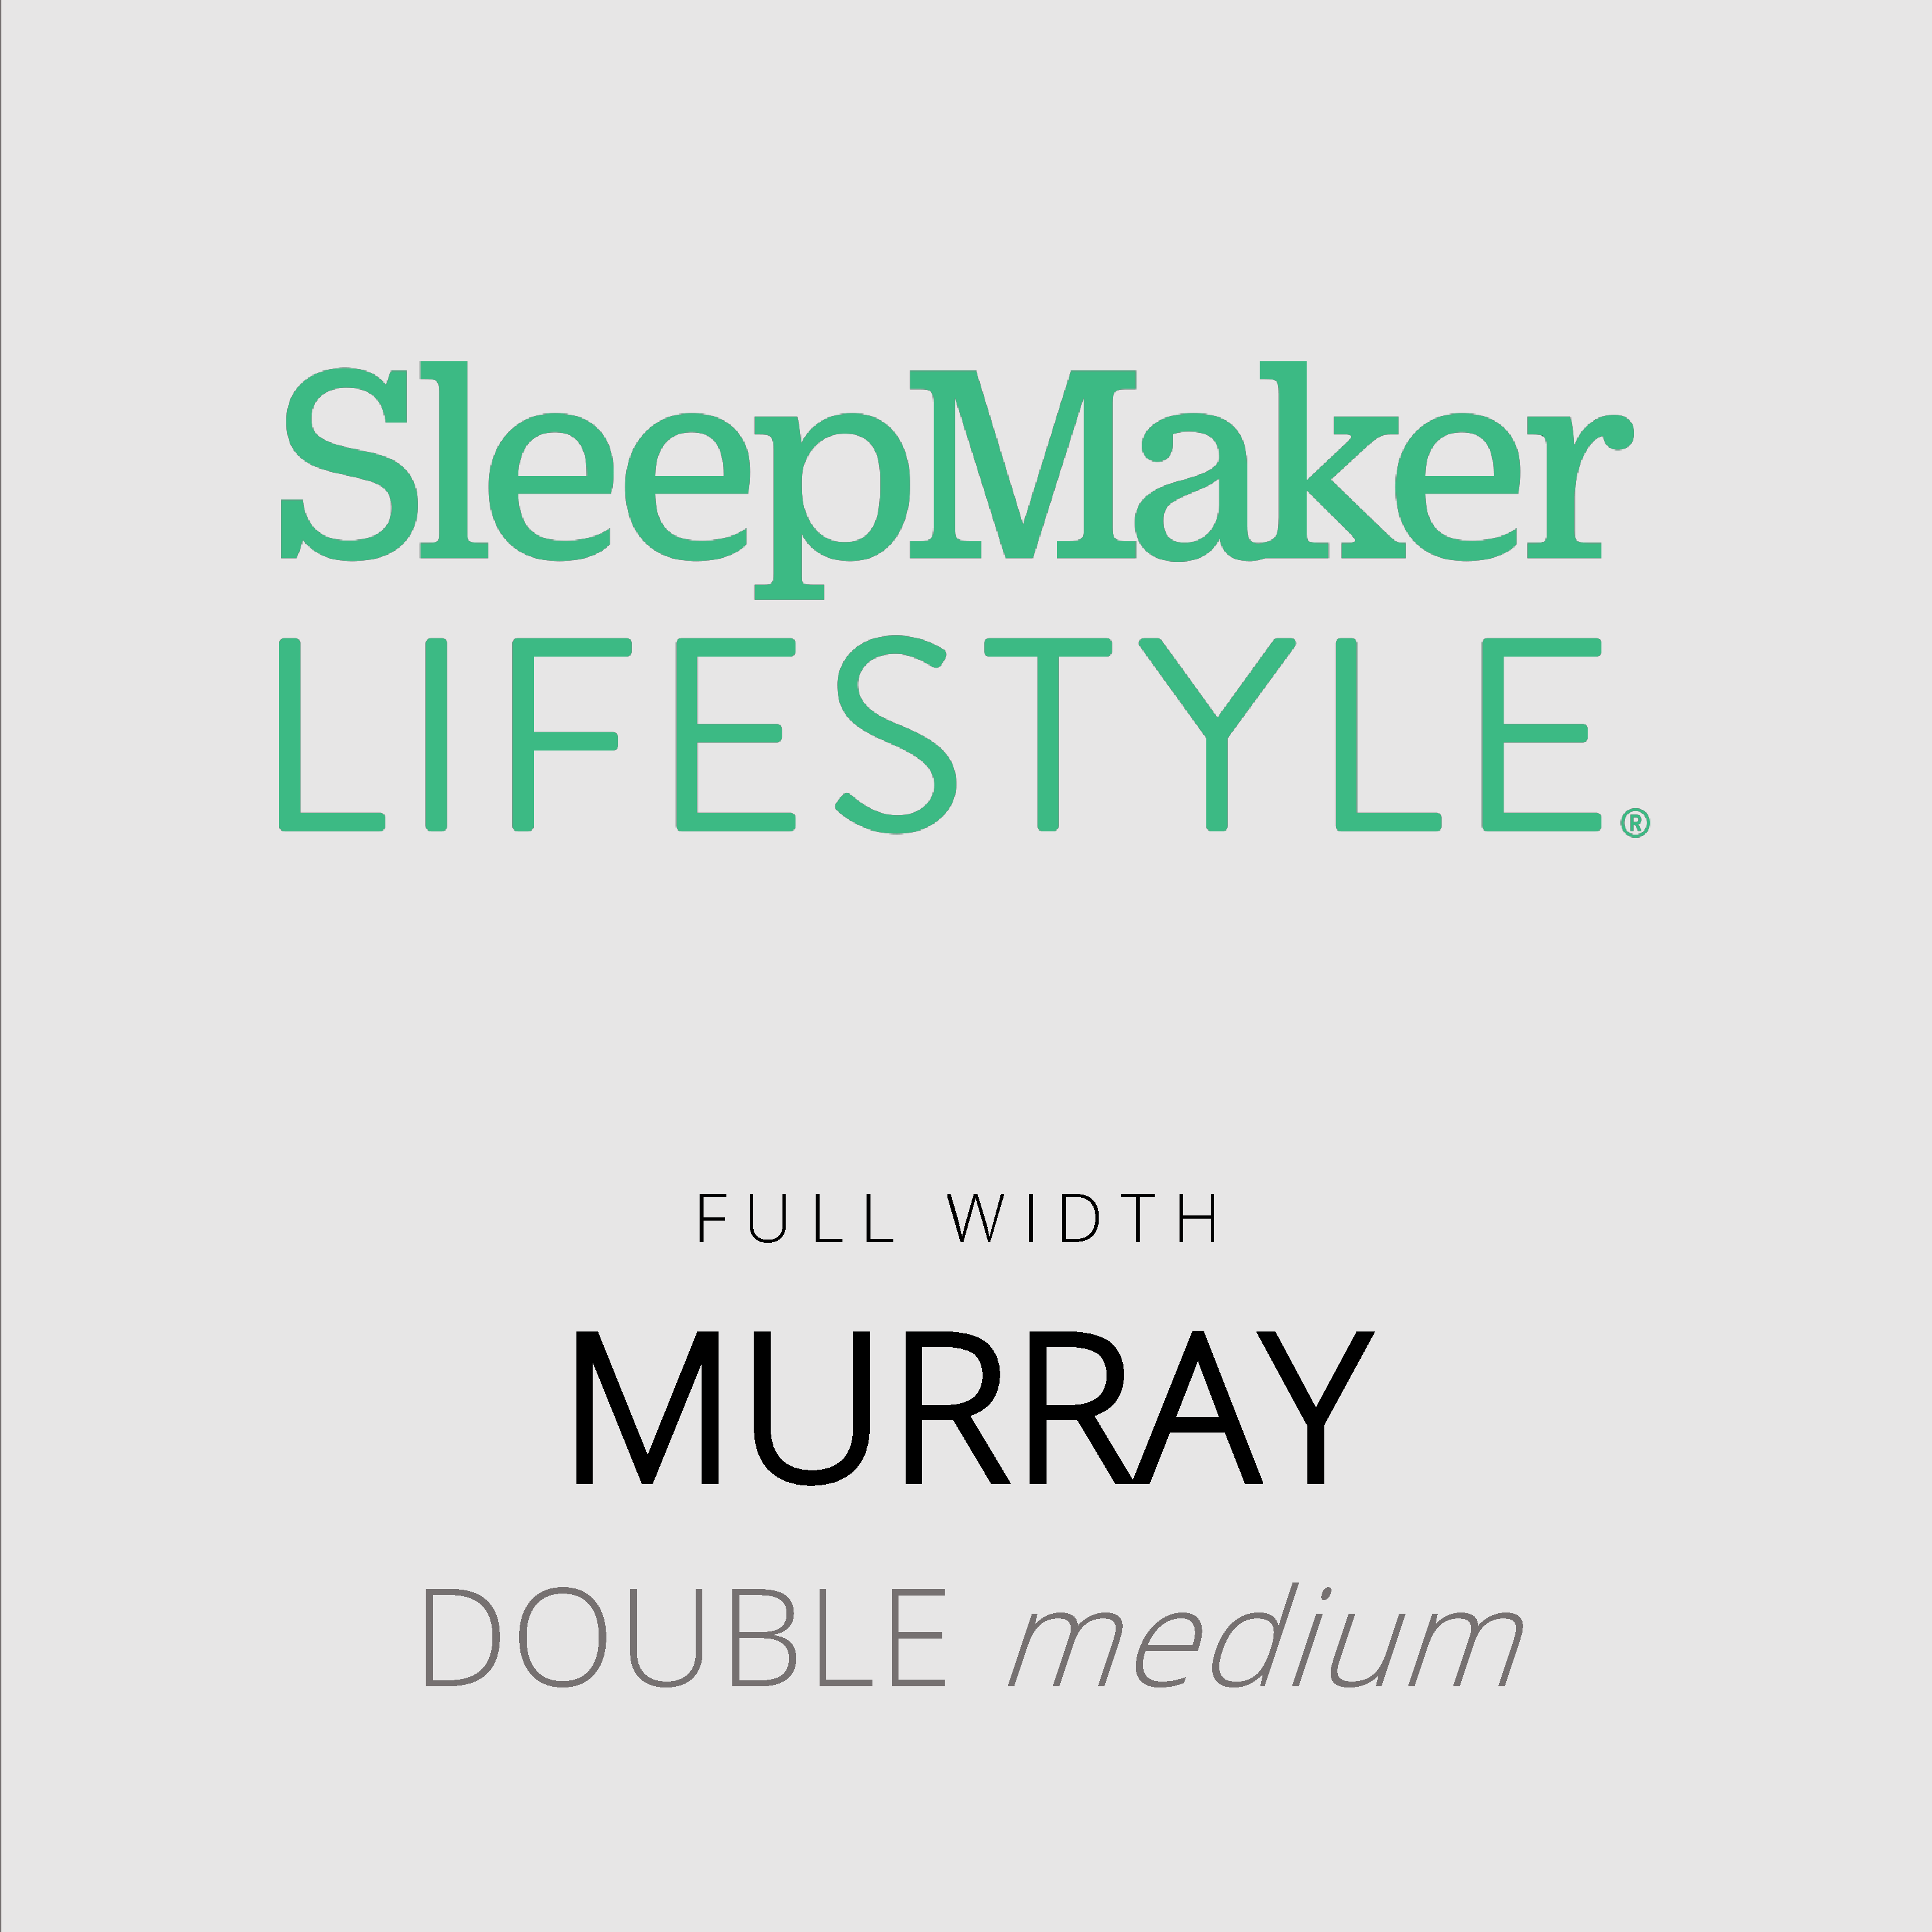 SleepMaker Lifestyle – Murray – Full Width – Double Medium Mattress